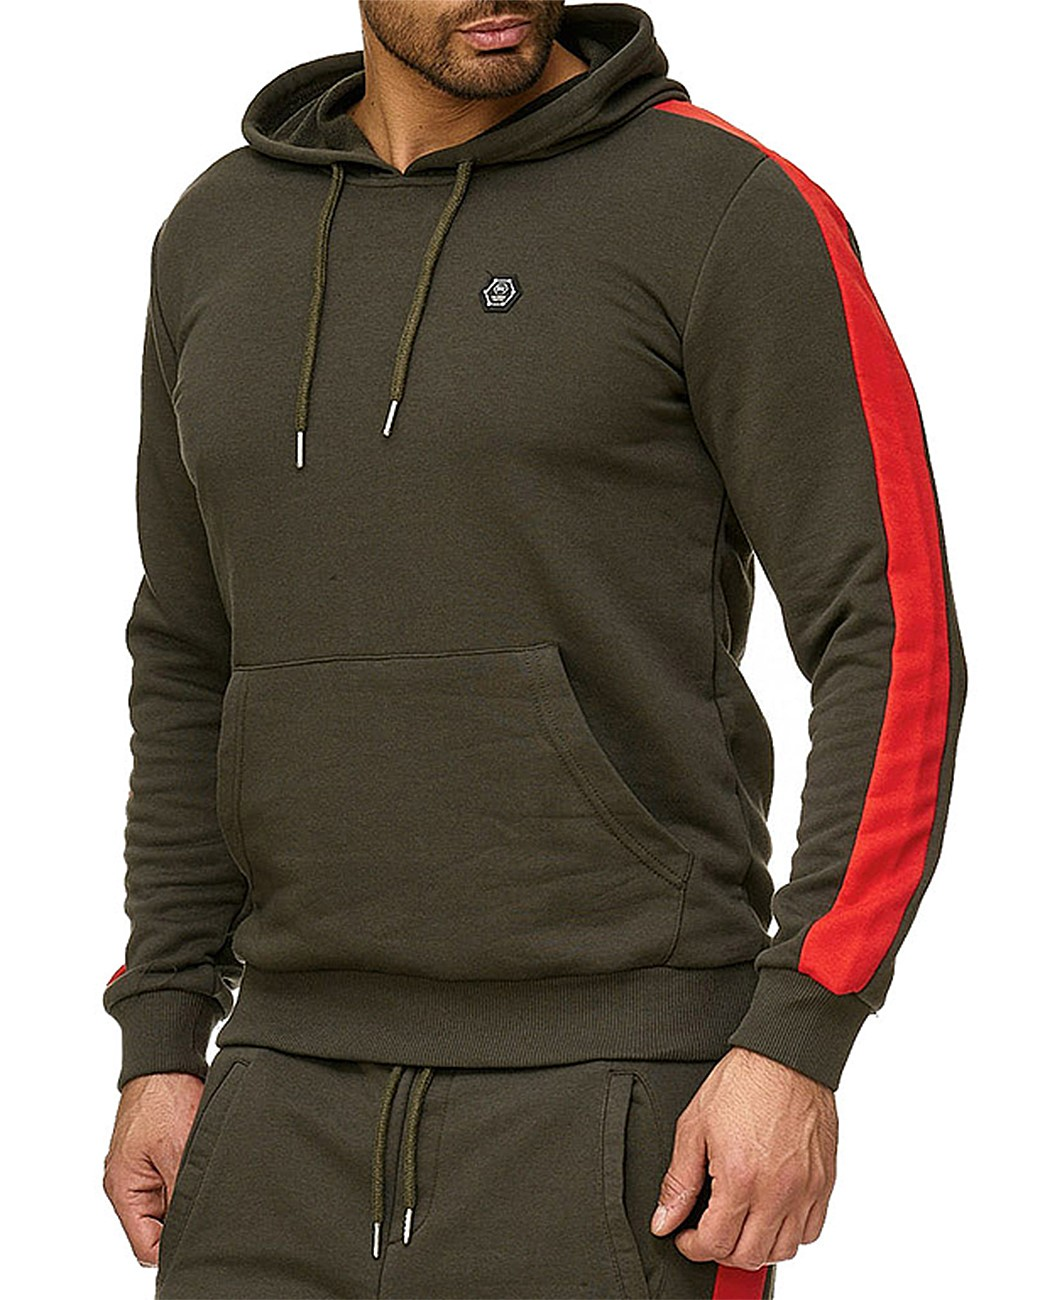 Redbridge-senores-regular-fit-chandal-fitness-sueter-aerobic-pantalones miniatura 28